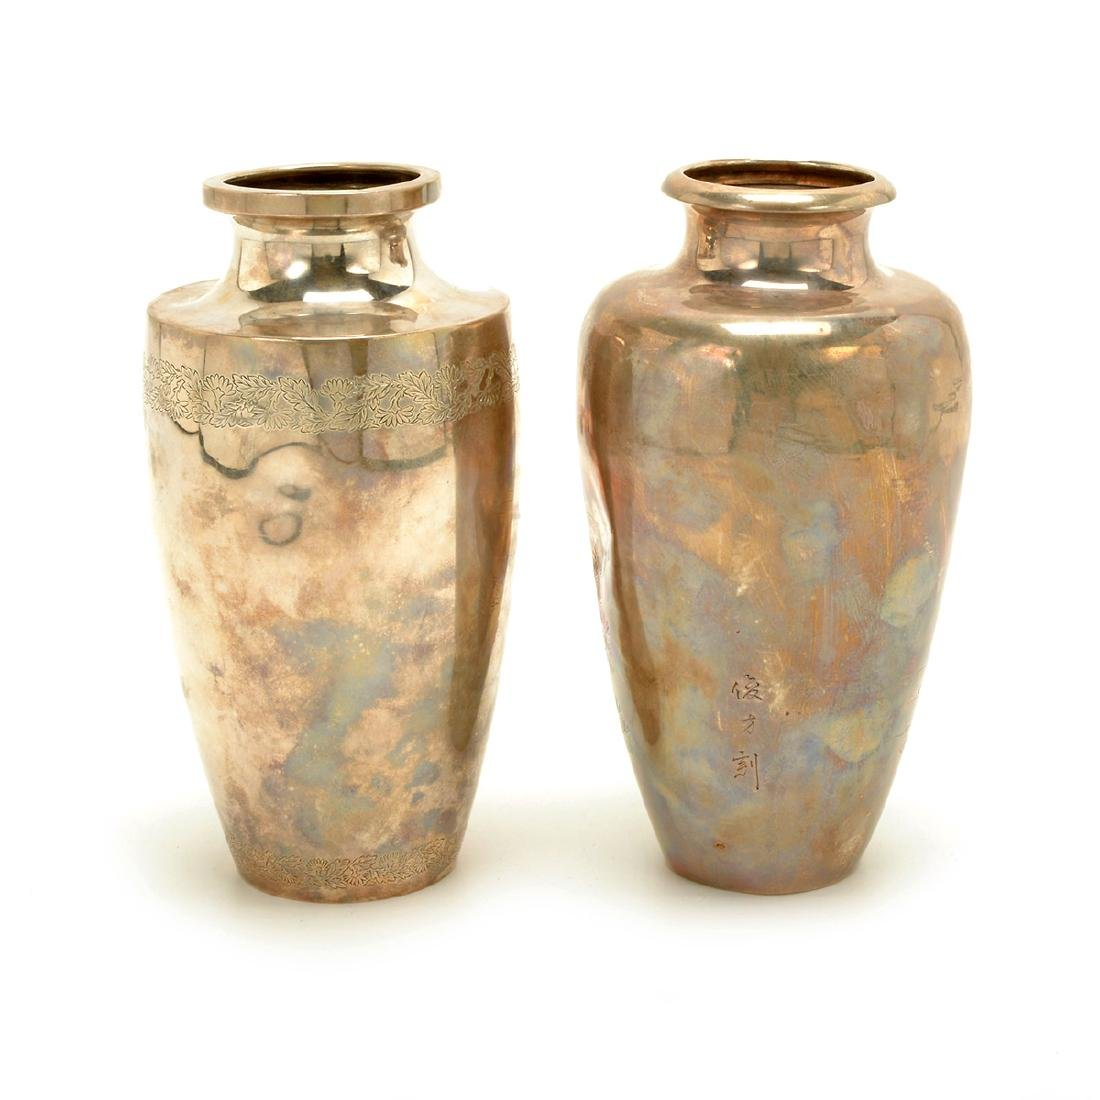 Two Baluster Silver Vases, Meiji Period - 2